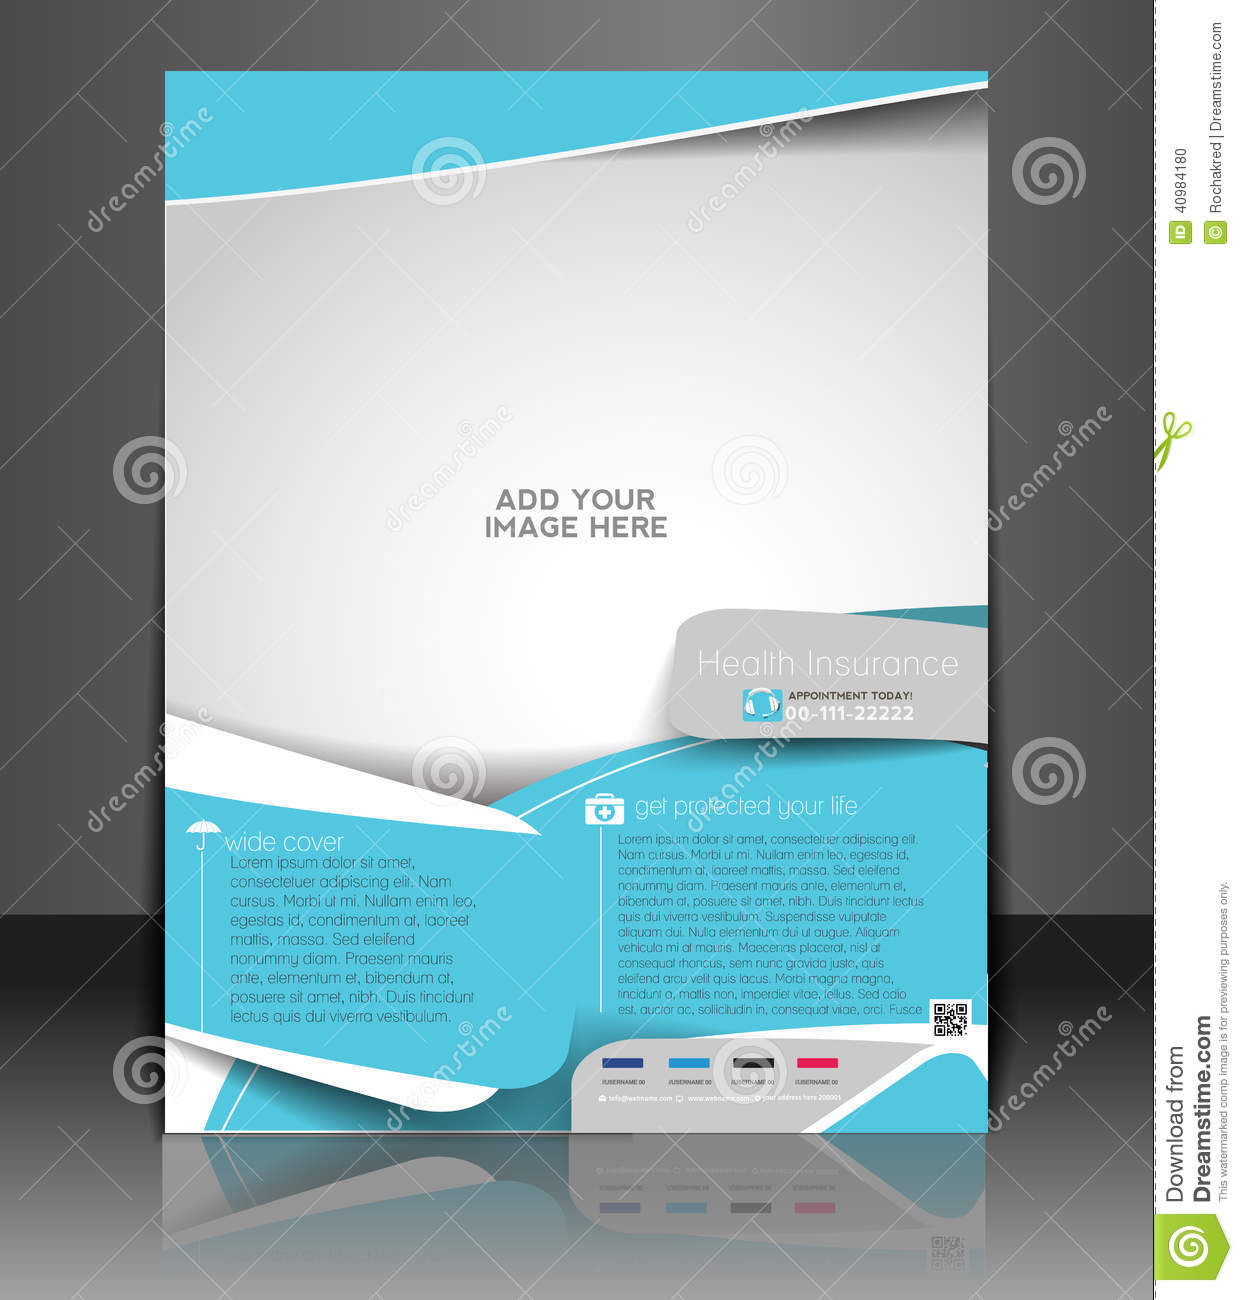 Professional Poster Design Templates - More information - Djekova for Professional Poster Design Templates  599kxo